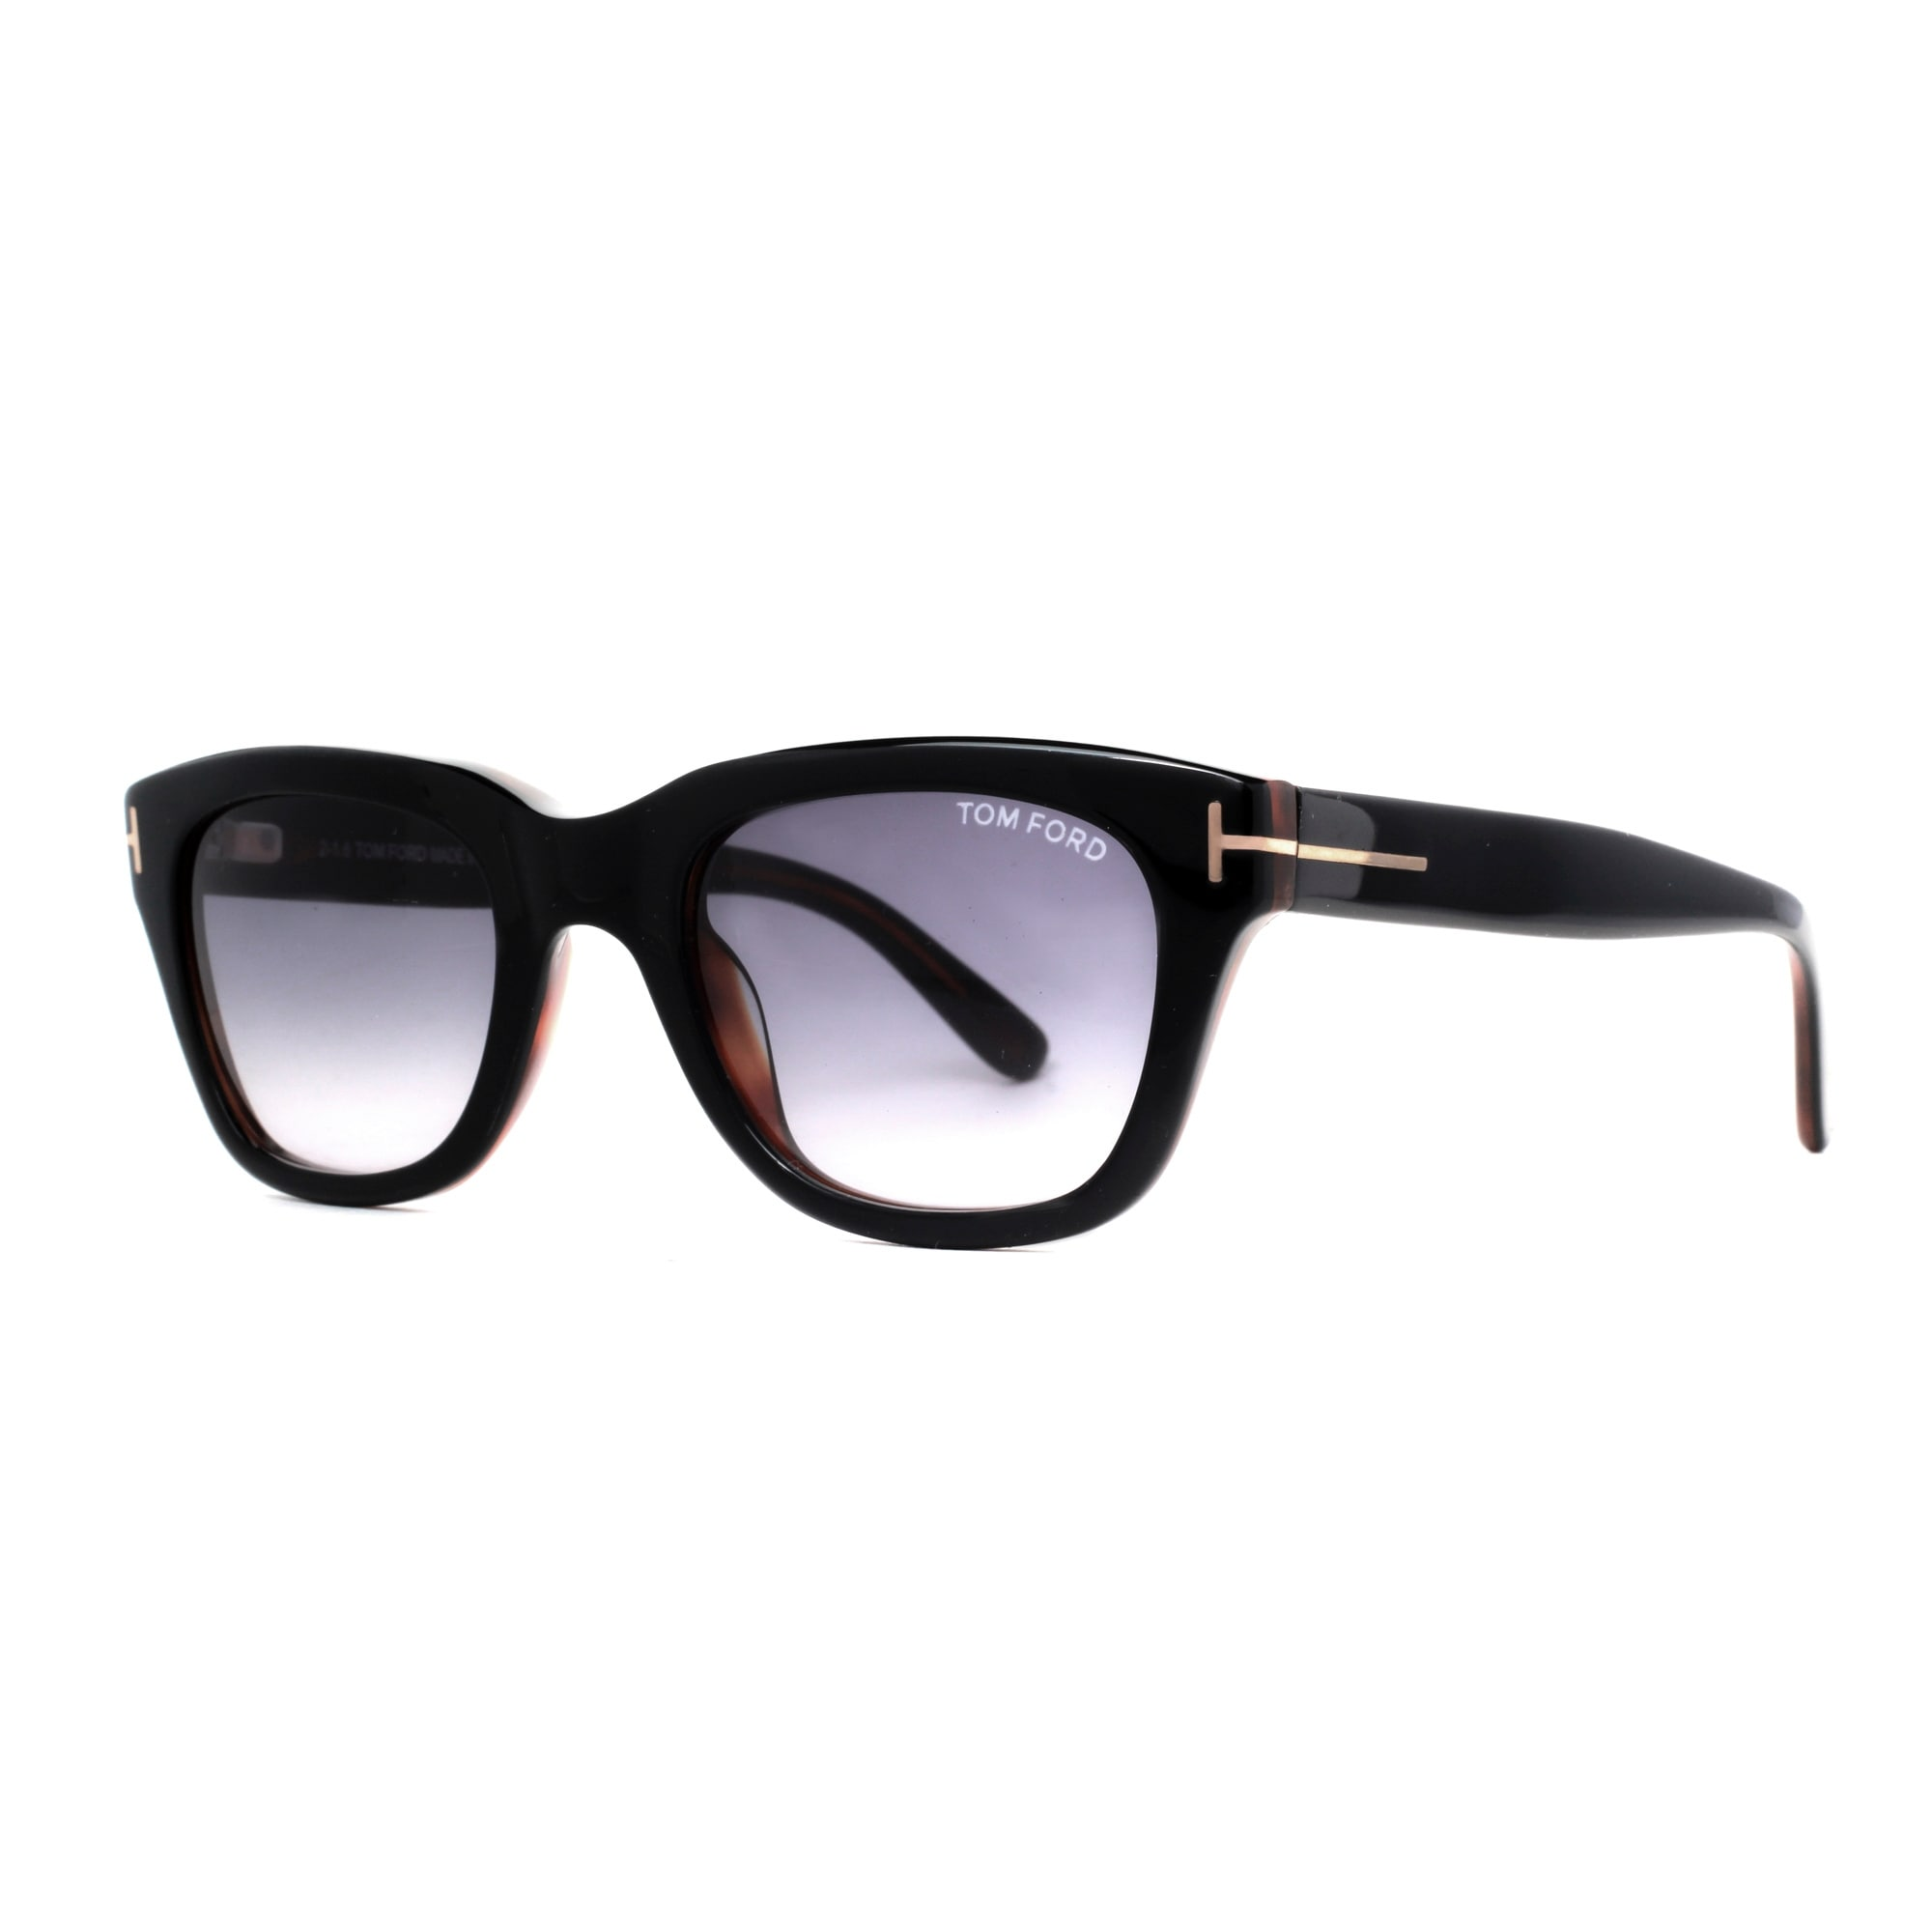 b39e4f34cc Tom Ford Snowdon TF 237 05B 50mm Shiny Black Gray Gradient Men Square  Sunglasses - Black brown - 50mm-21mm-145mm